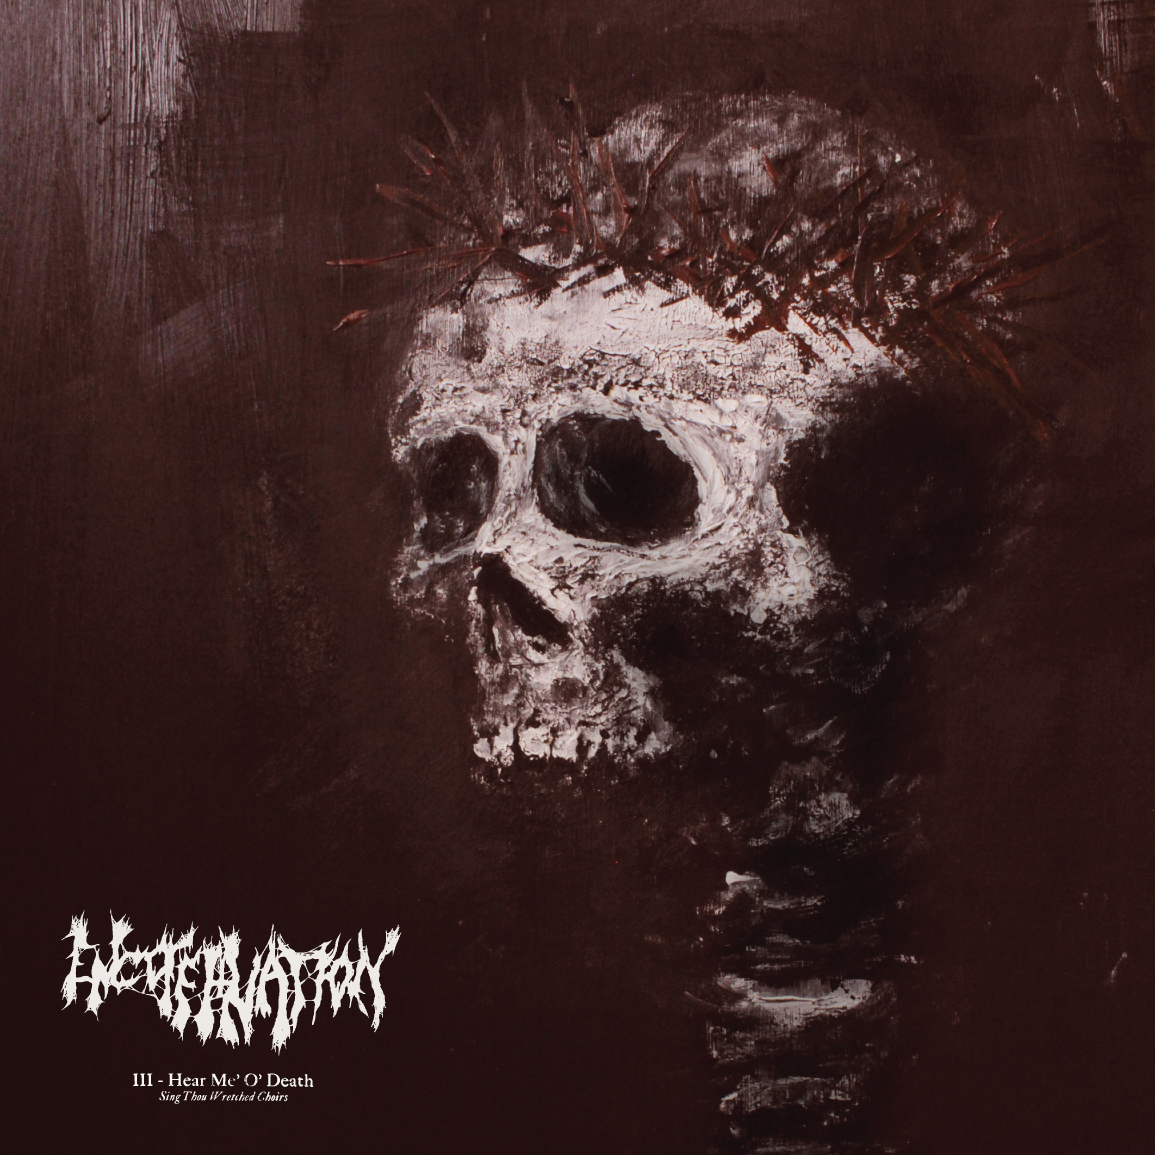 Encoffination – III-Hear Me O' Death (Sing Thou Wretched Choirs) Review